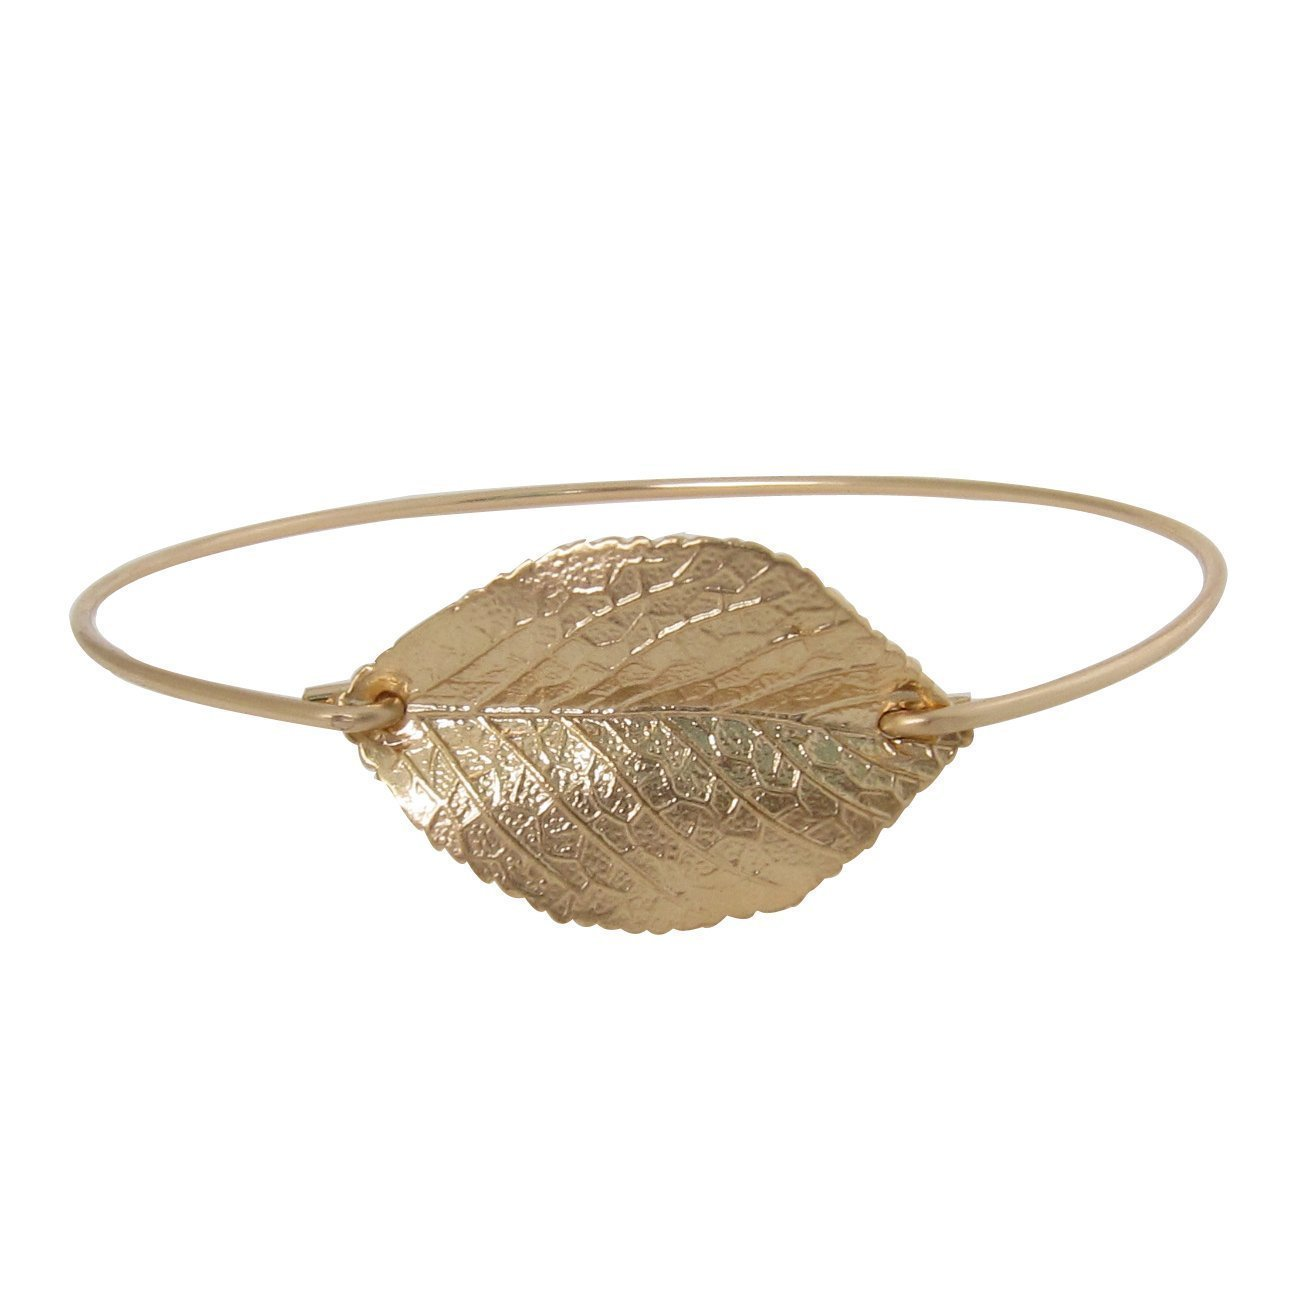 Frosted Willow Nature Jewelry Gift Collection Claspless Leaf Bangle Bracelet (Gold-Plated, 8 Inch)